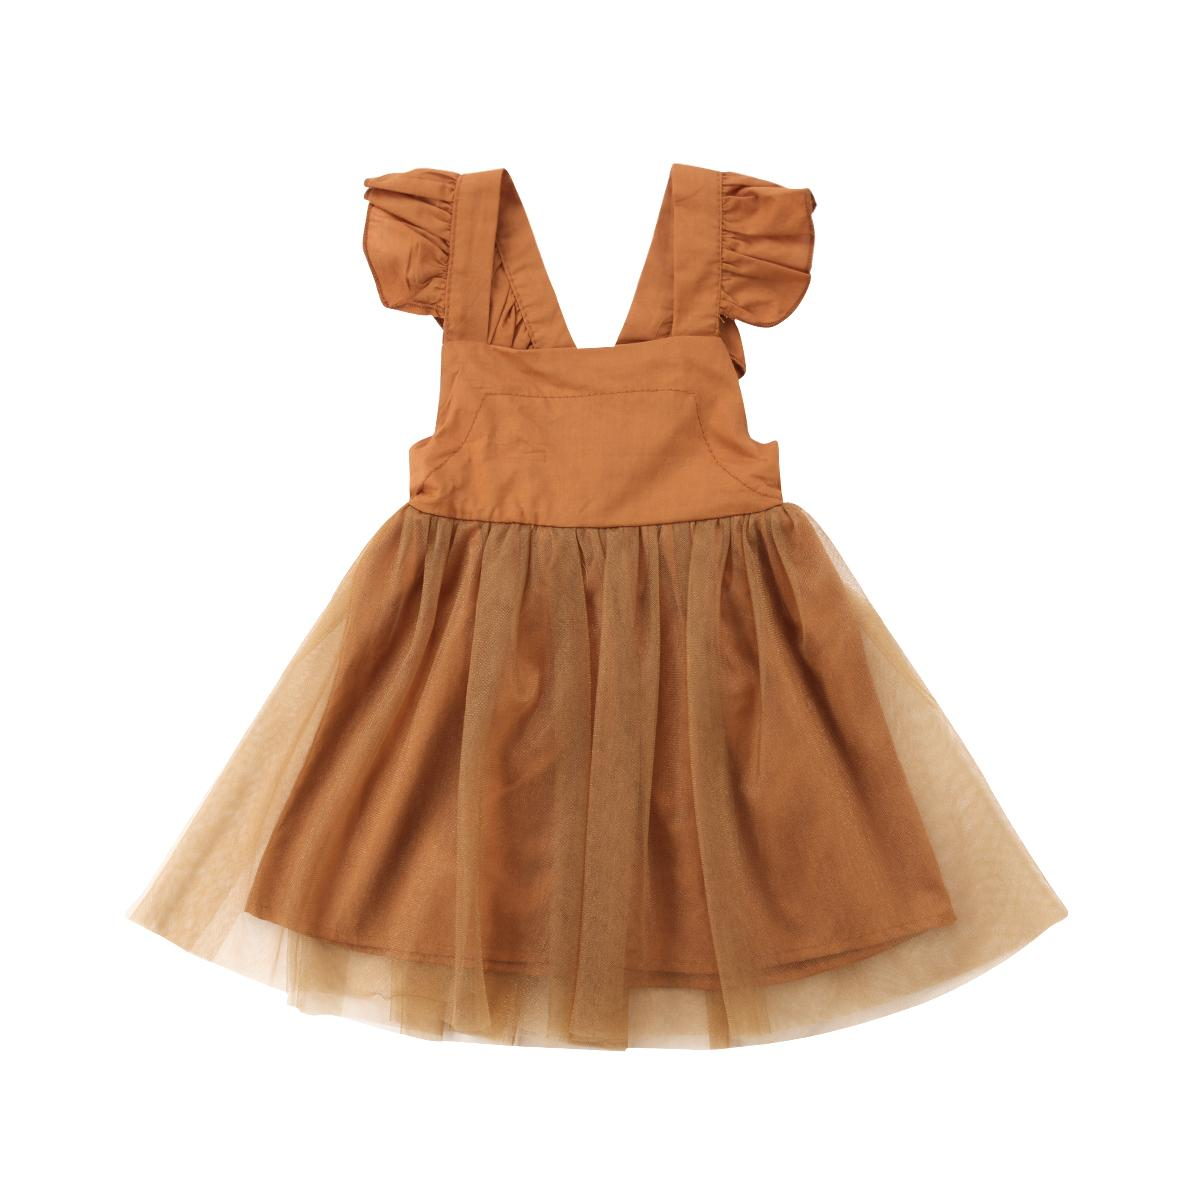 Baby Girl Kids Clothes Toddler Backless Dress Sleeveless Tutu Summer Outfit Tops